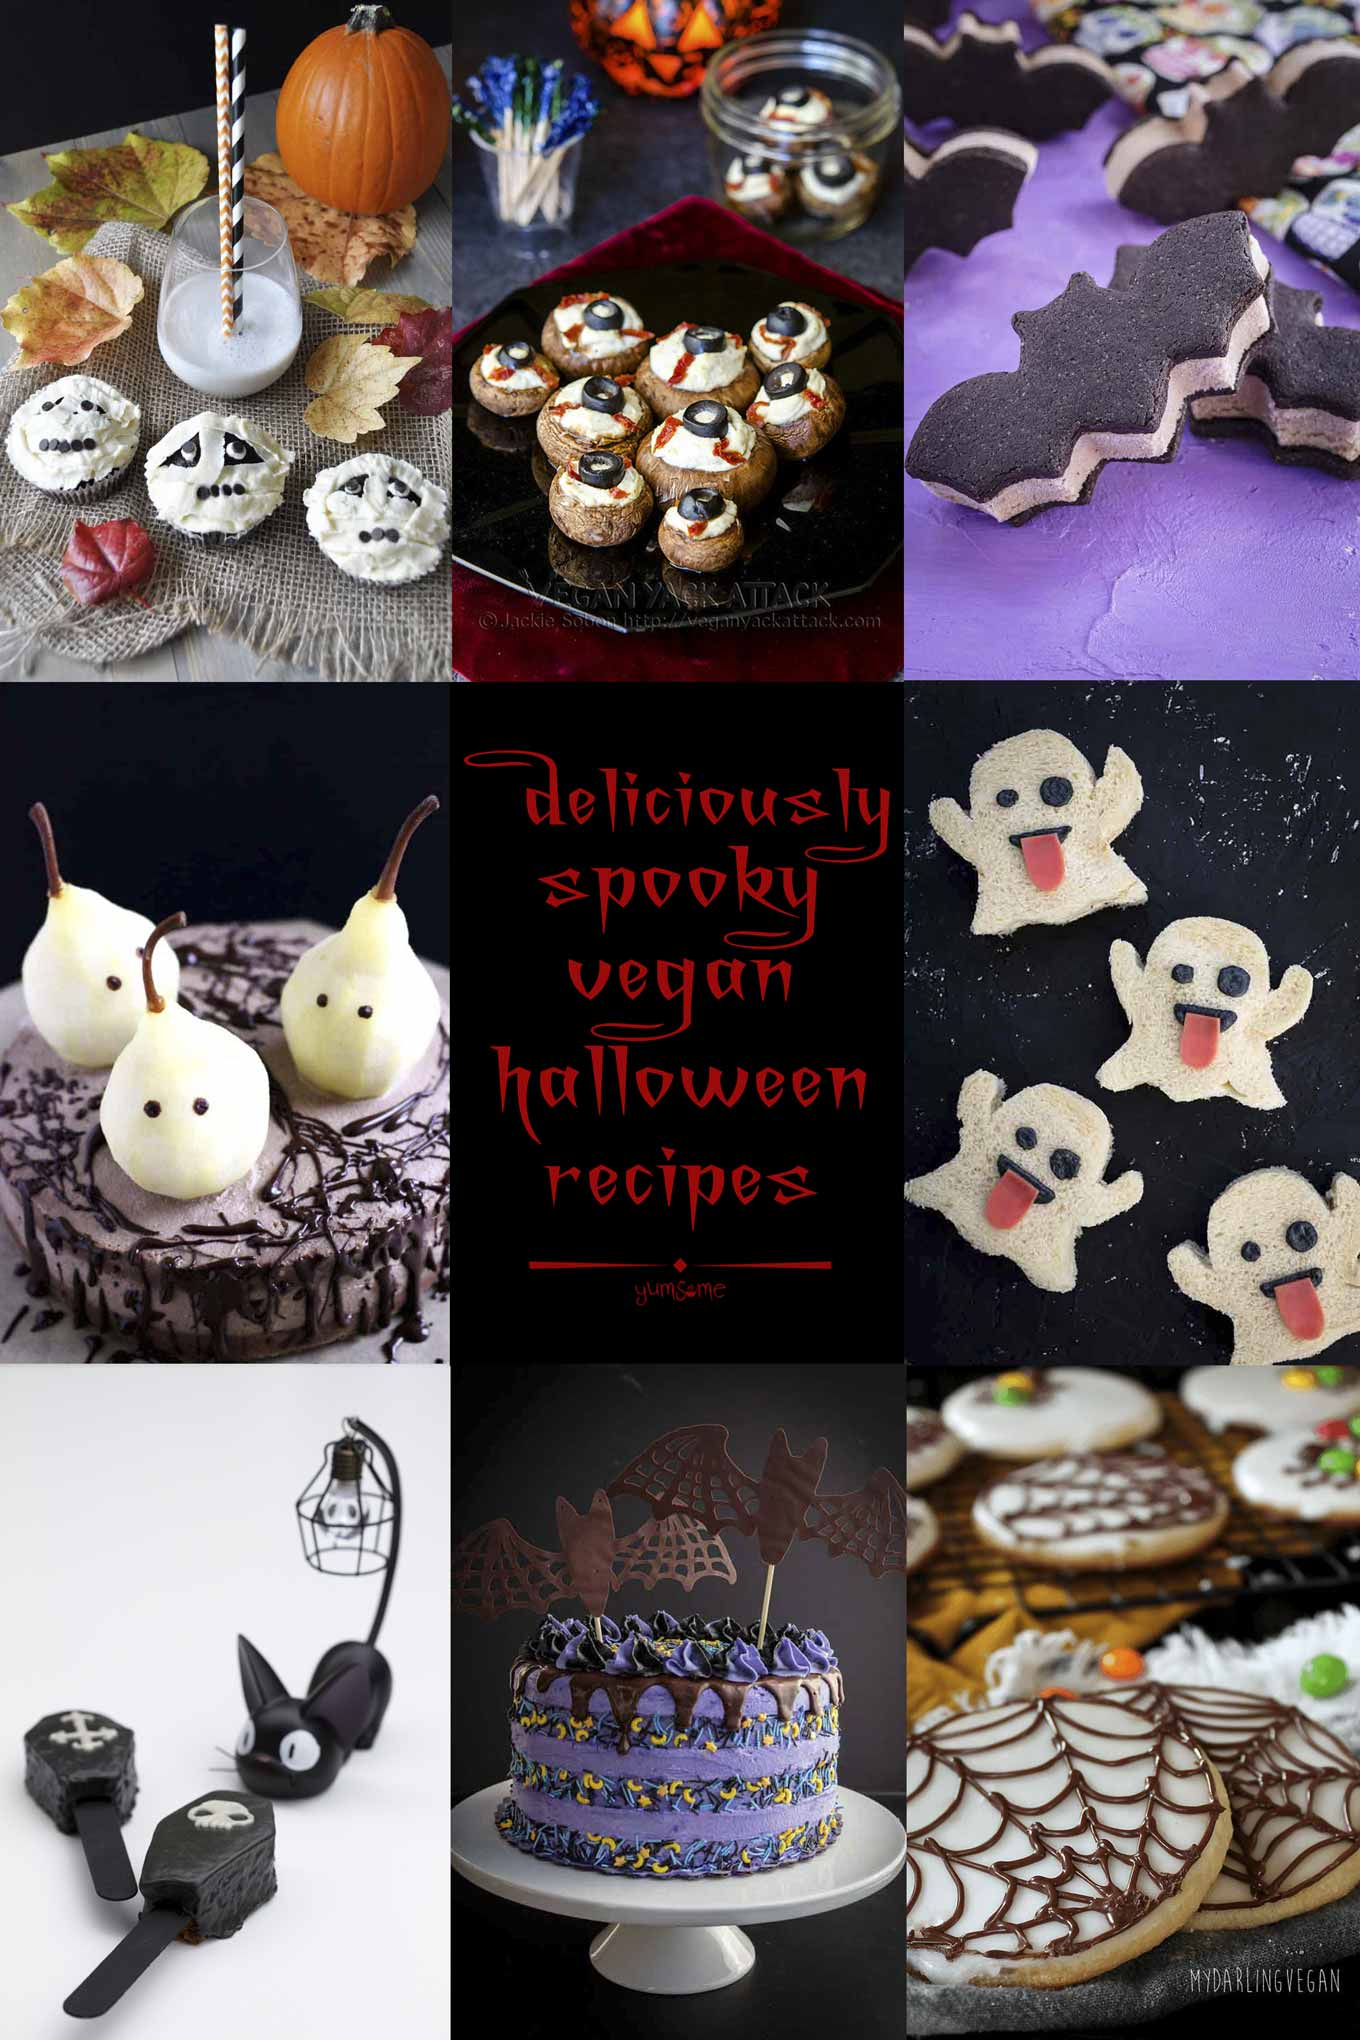 Are you planning a #vegan #Halloween #party, and stumped for ideas? Or perhaps wondering which #devilish vegan treats you can make for all the wee #ghosts and #ghoulies who\'ll be knocking at your door? Fear not, for help is at hand, with this collection of #deliciously #spooky vegan Halloween #recipes... guaranteed to put the \'ooh\' into Booooo! | yumsome.com